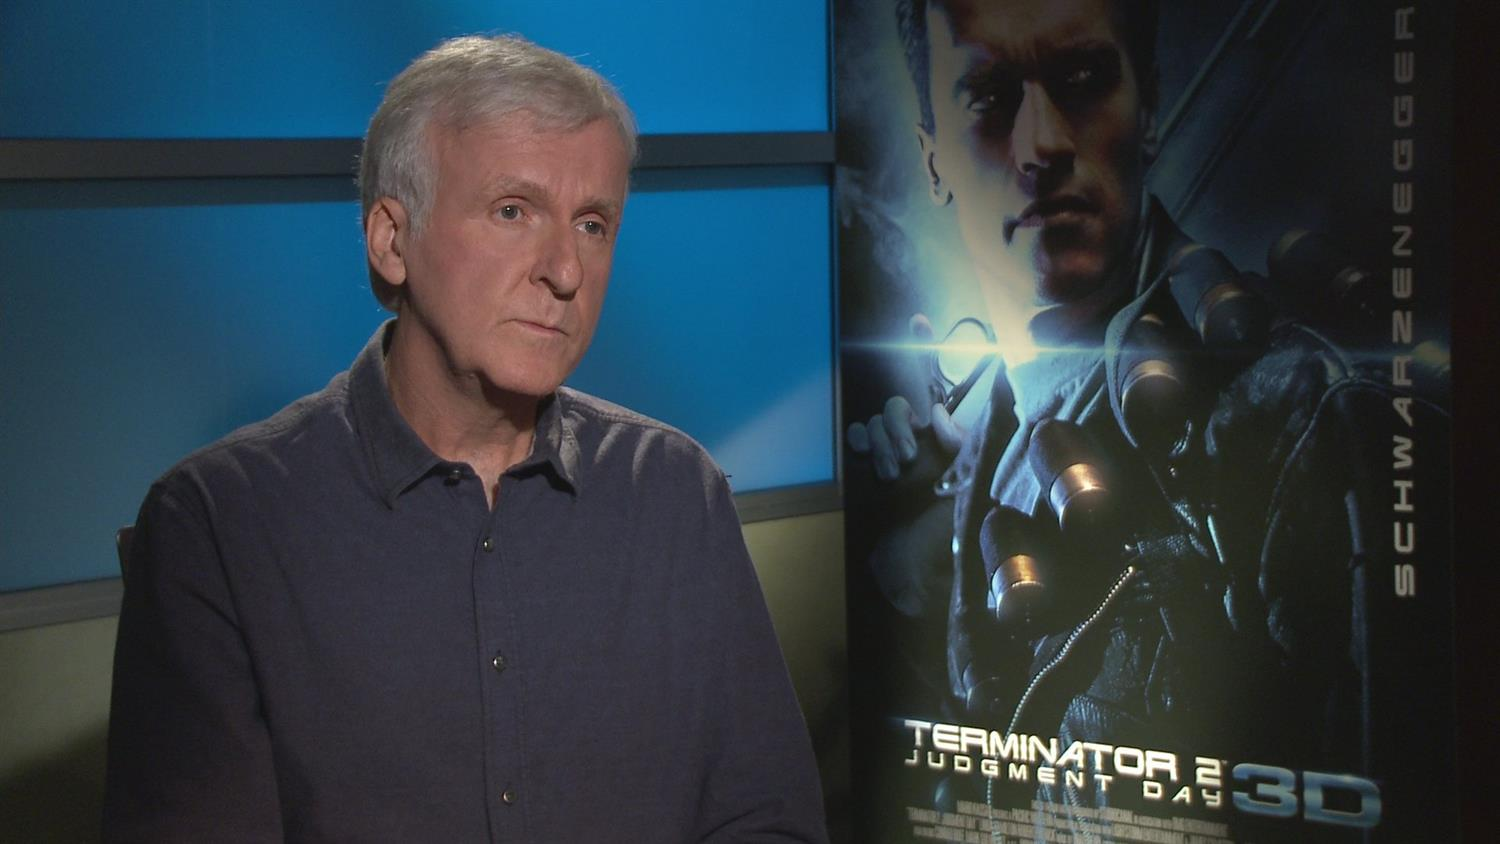 James Cameron on Terminator 2, Avatar and What Makes Franchises Last